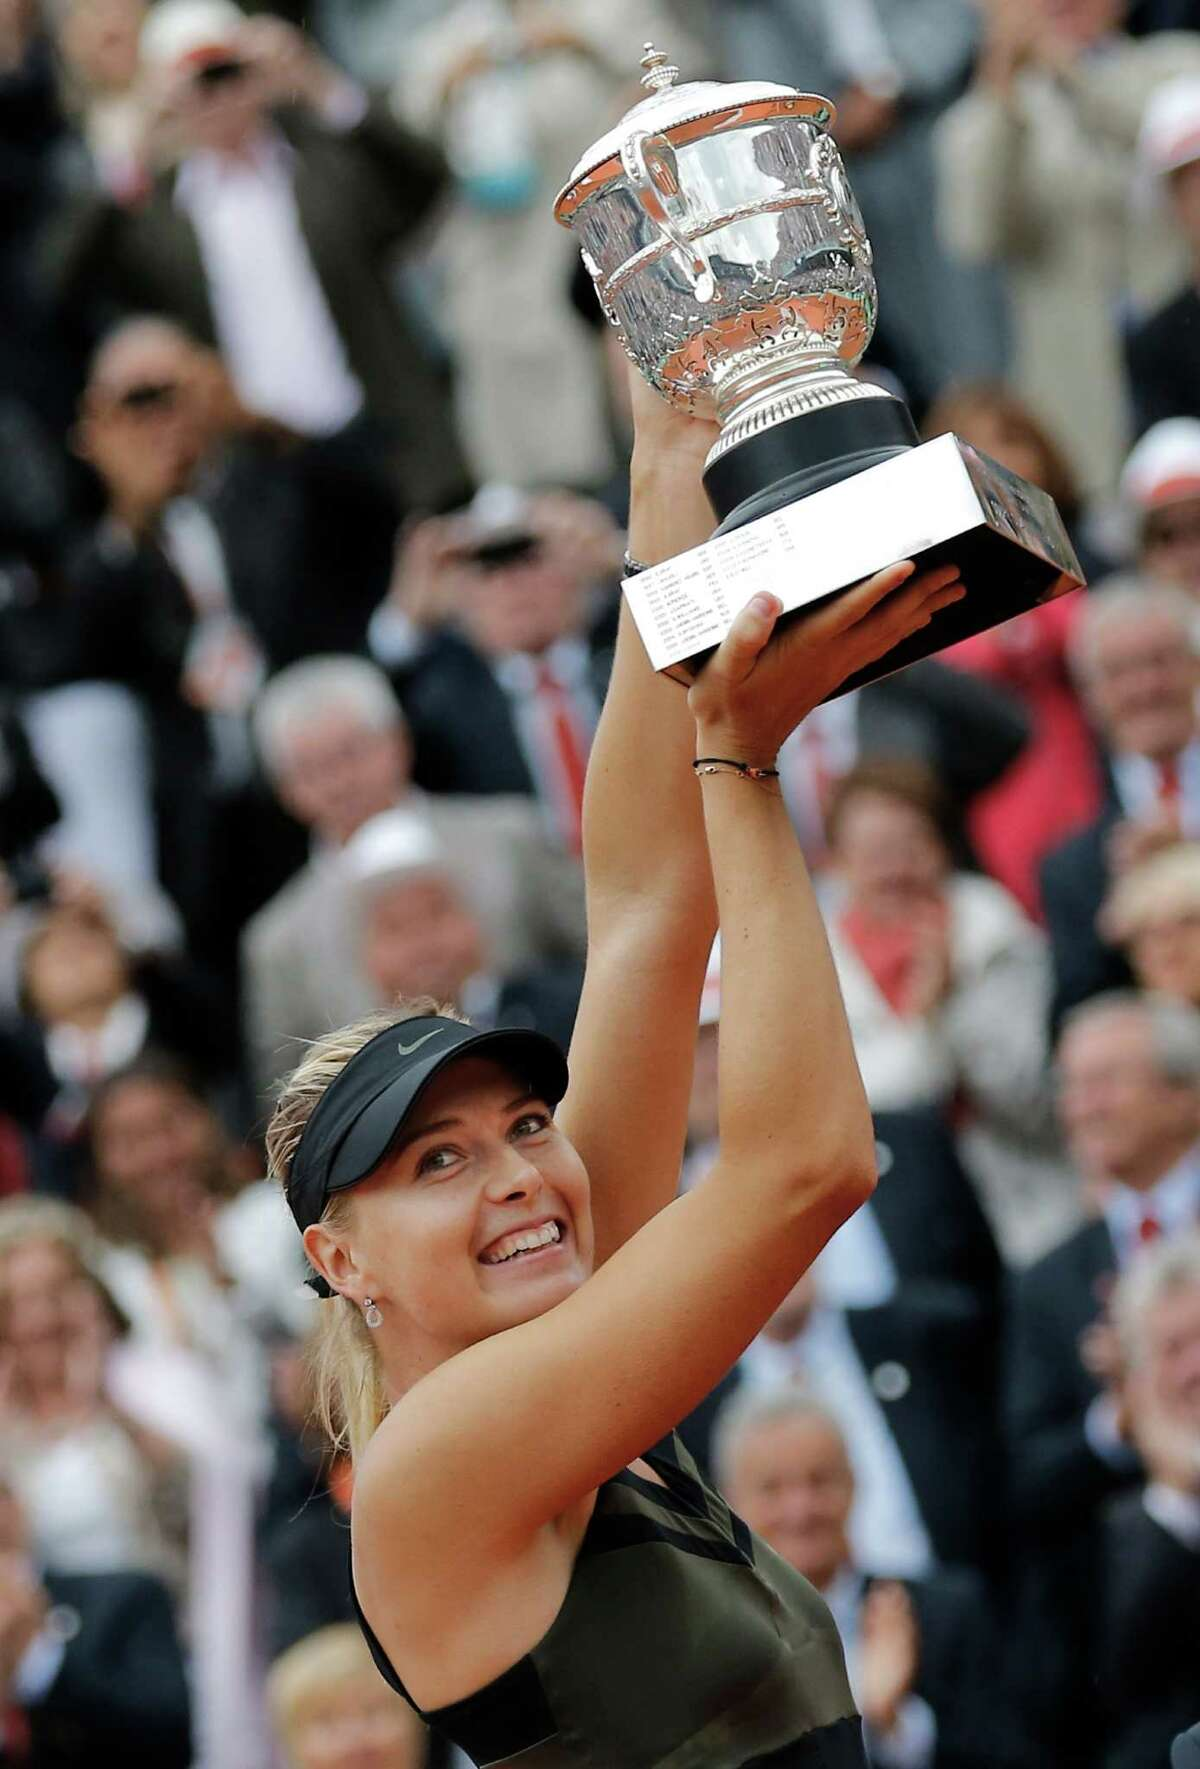 Maria Sharapova defeated Sara Errani 6-3, 6-2 for her first French Open title.